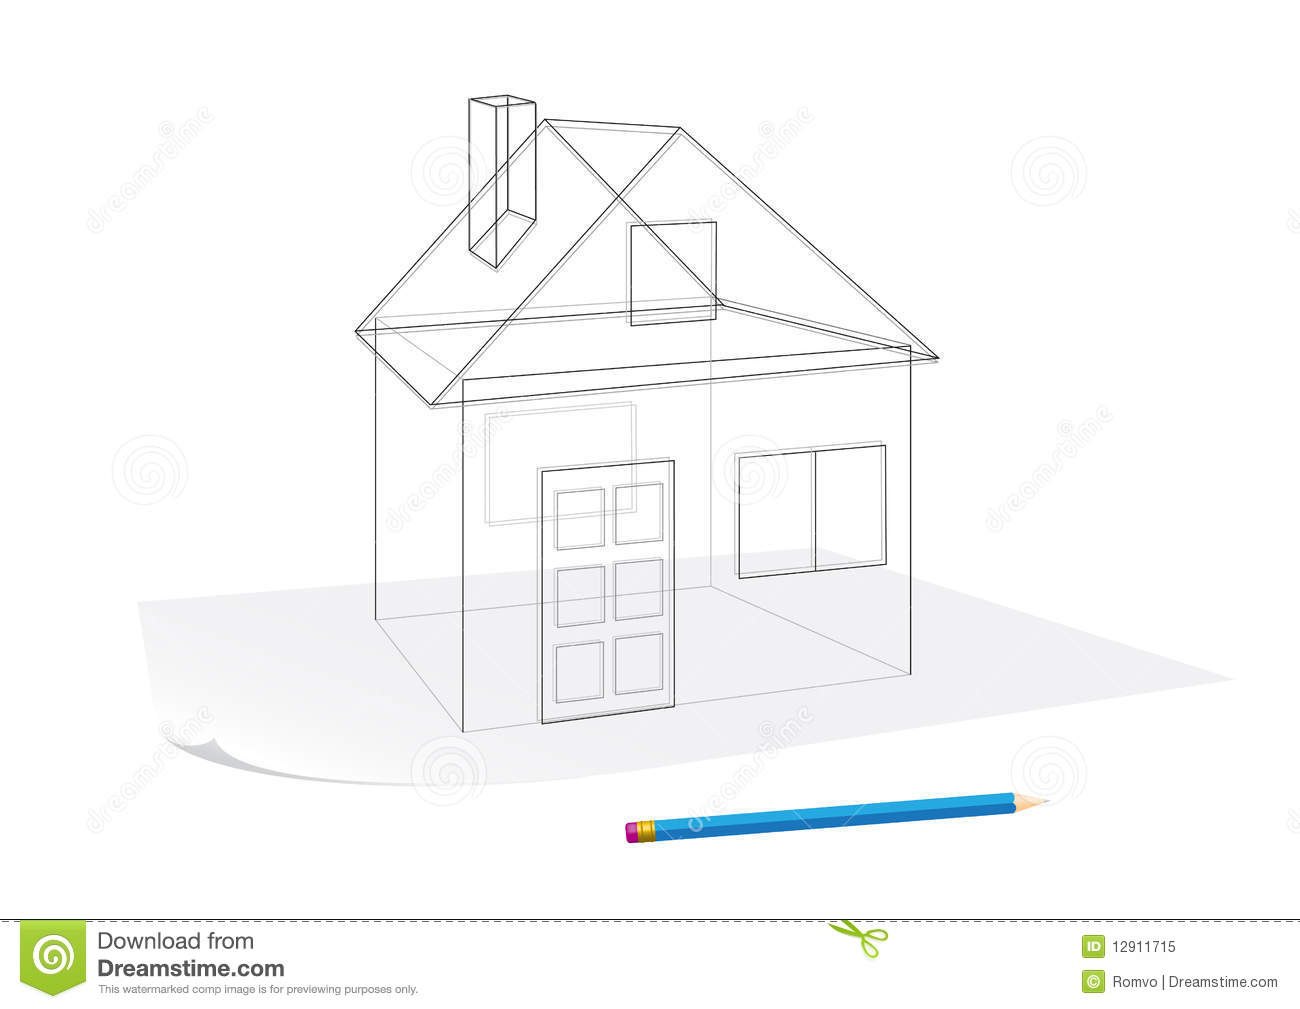 Simple House Sketch Royalty Free Stock Photo - Image: 12911715